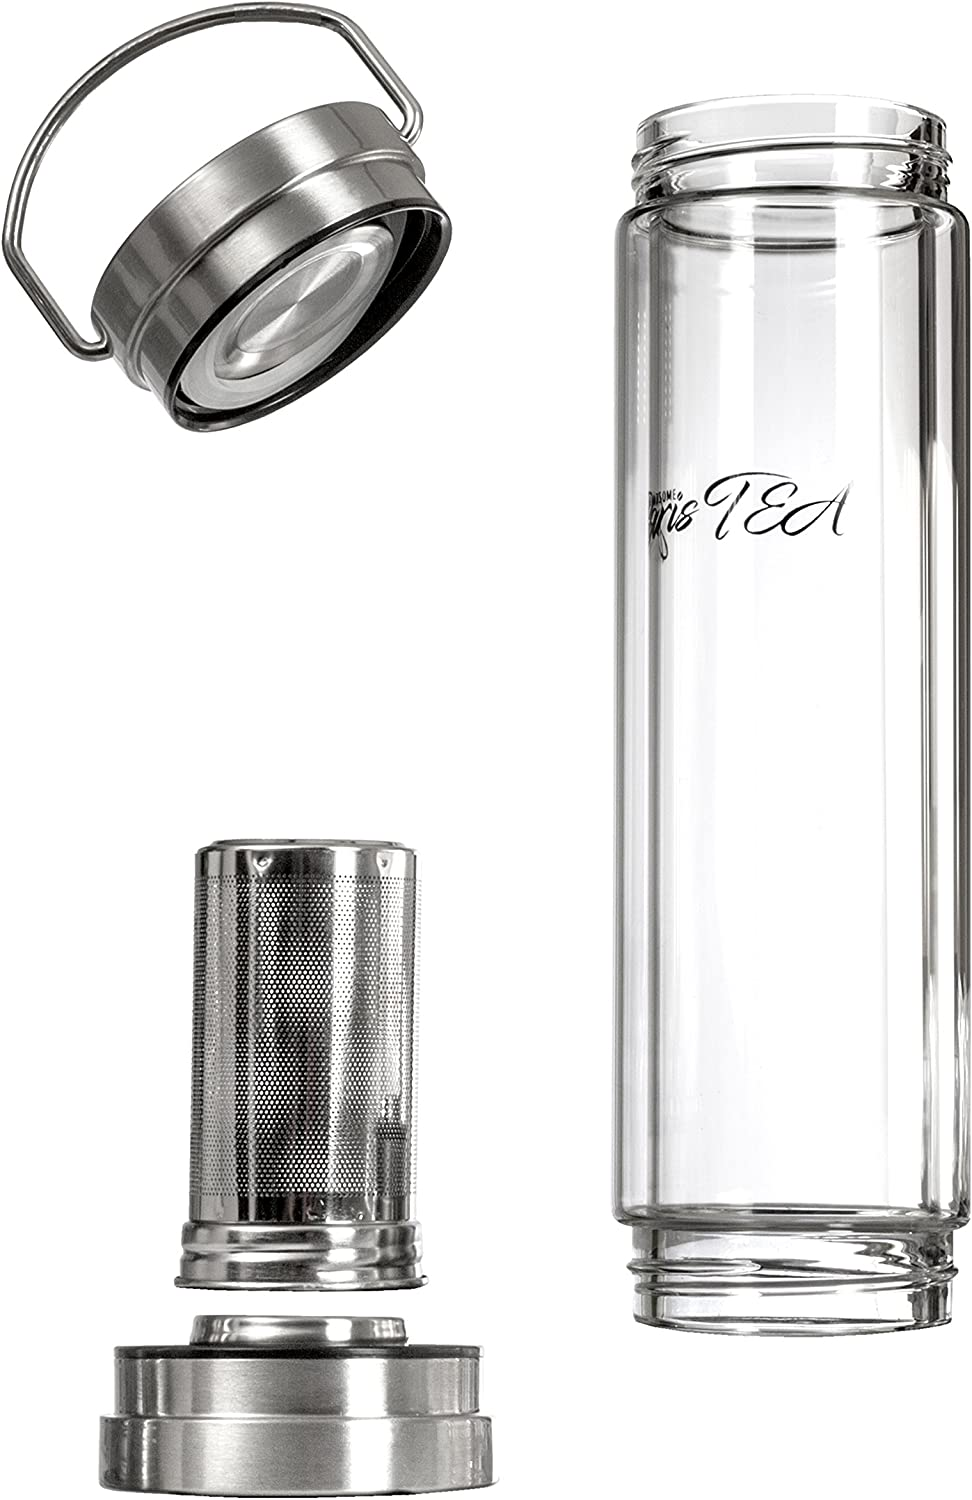 Top and Bottom Lids Handsome BarisTEA Versatile Luxury Bottle Borosilicate Glass 400ml Tea Maker Durable 304 Stainless Steel Removable Infuser BPA Free Double Wall Detox Bottle